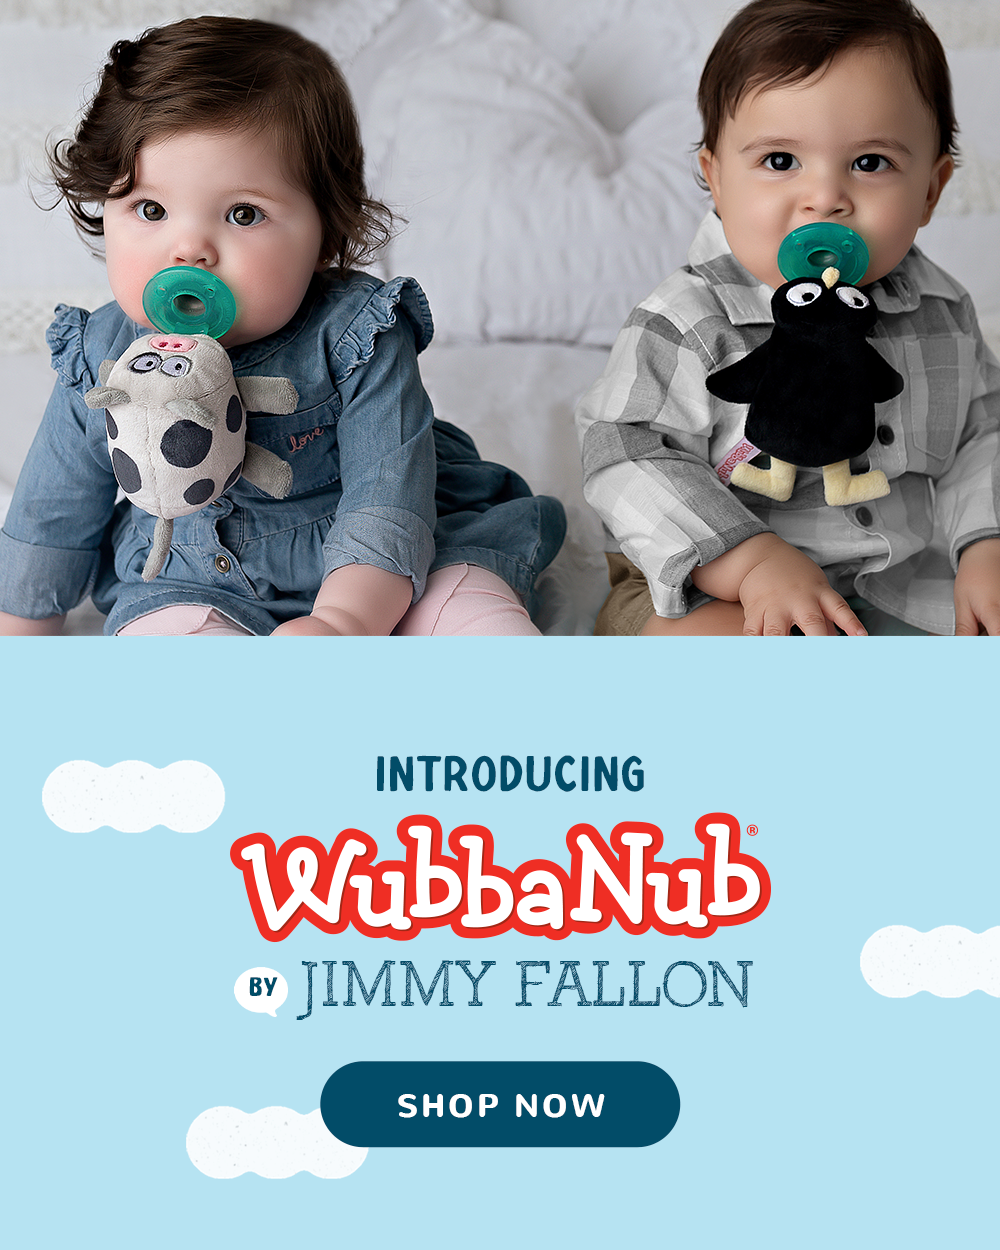 Babies with Jimmy Fallon MAMA Penguin and DADA Moo Cow WubbaNubs